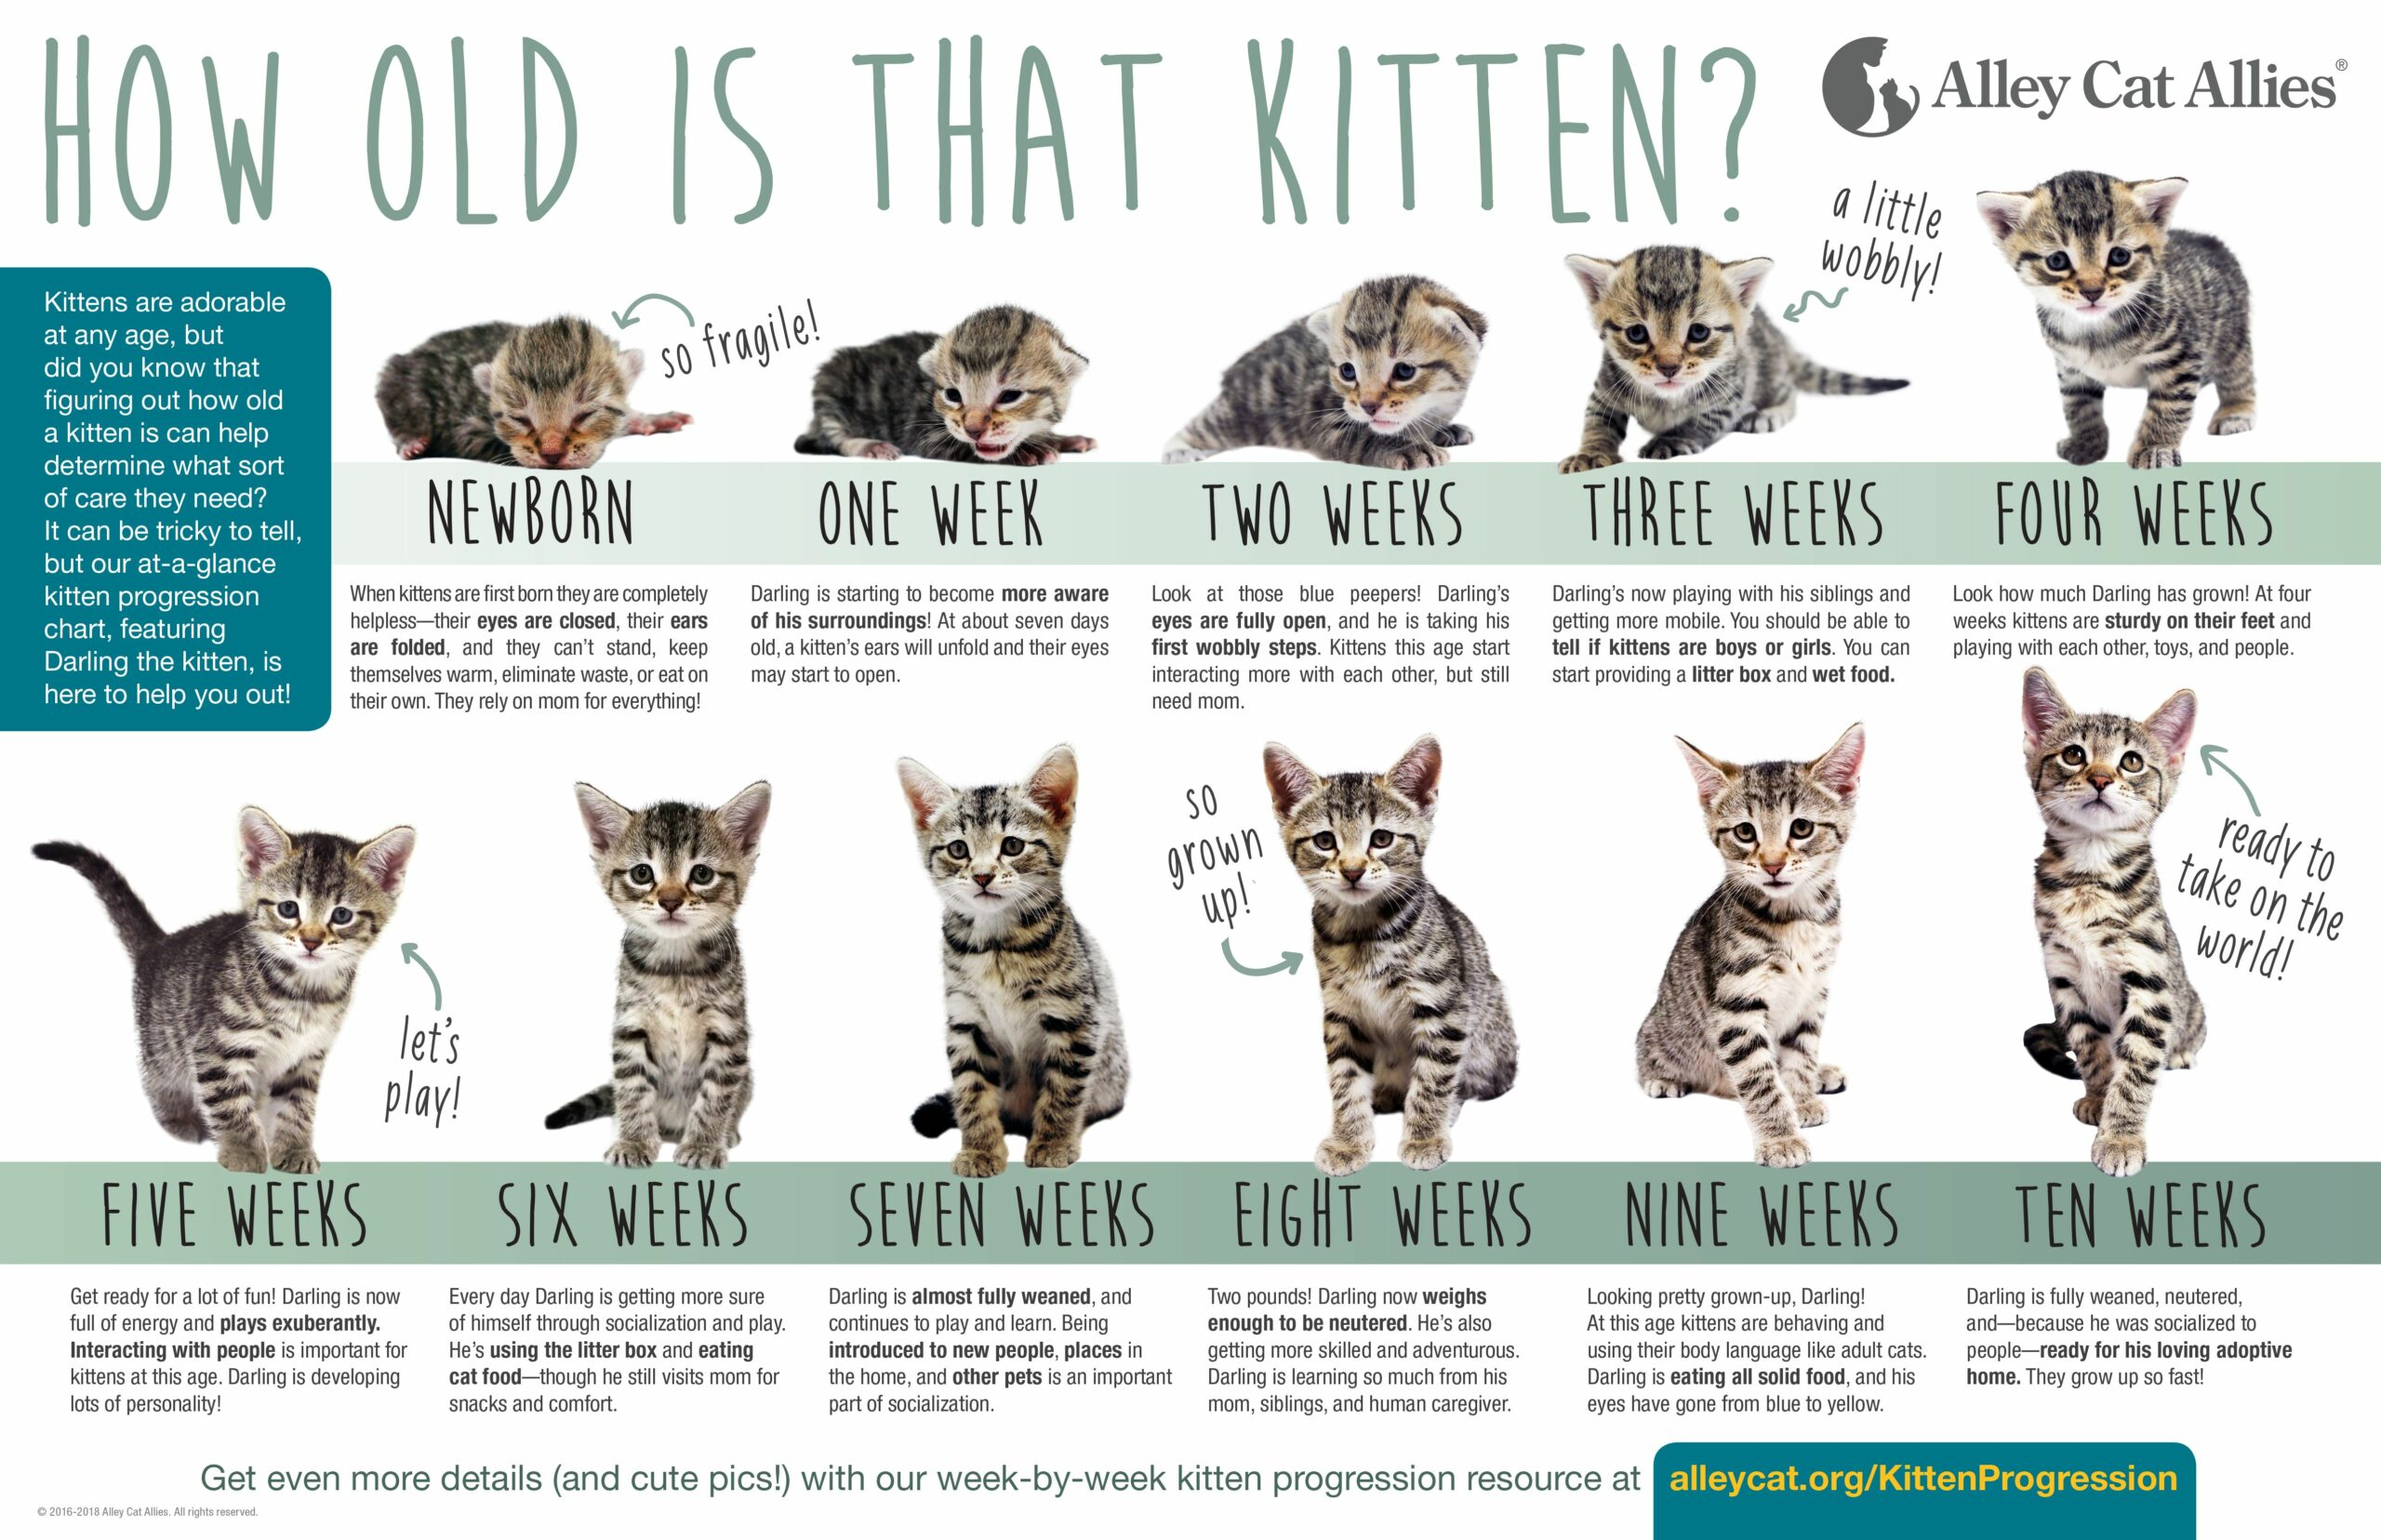 What Do Kittens Eat At 4 Weeks